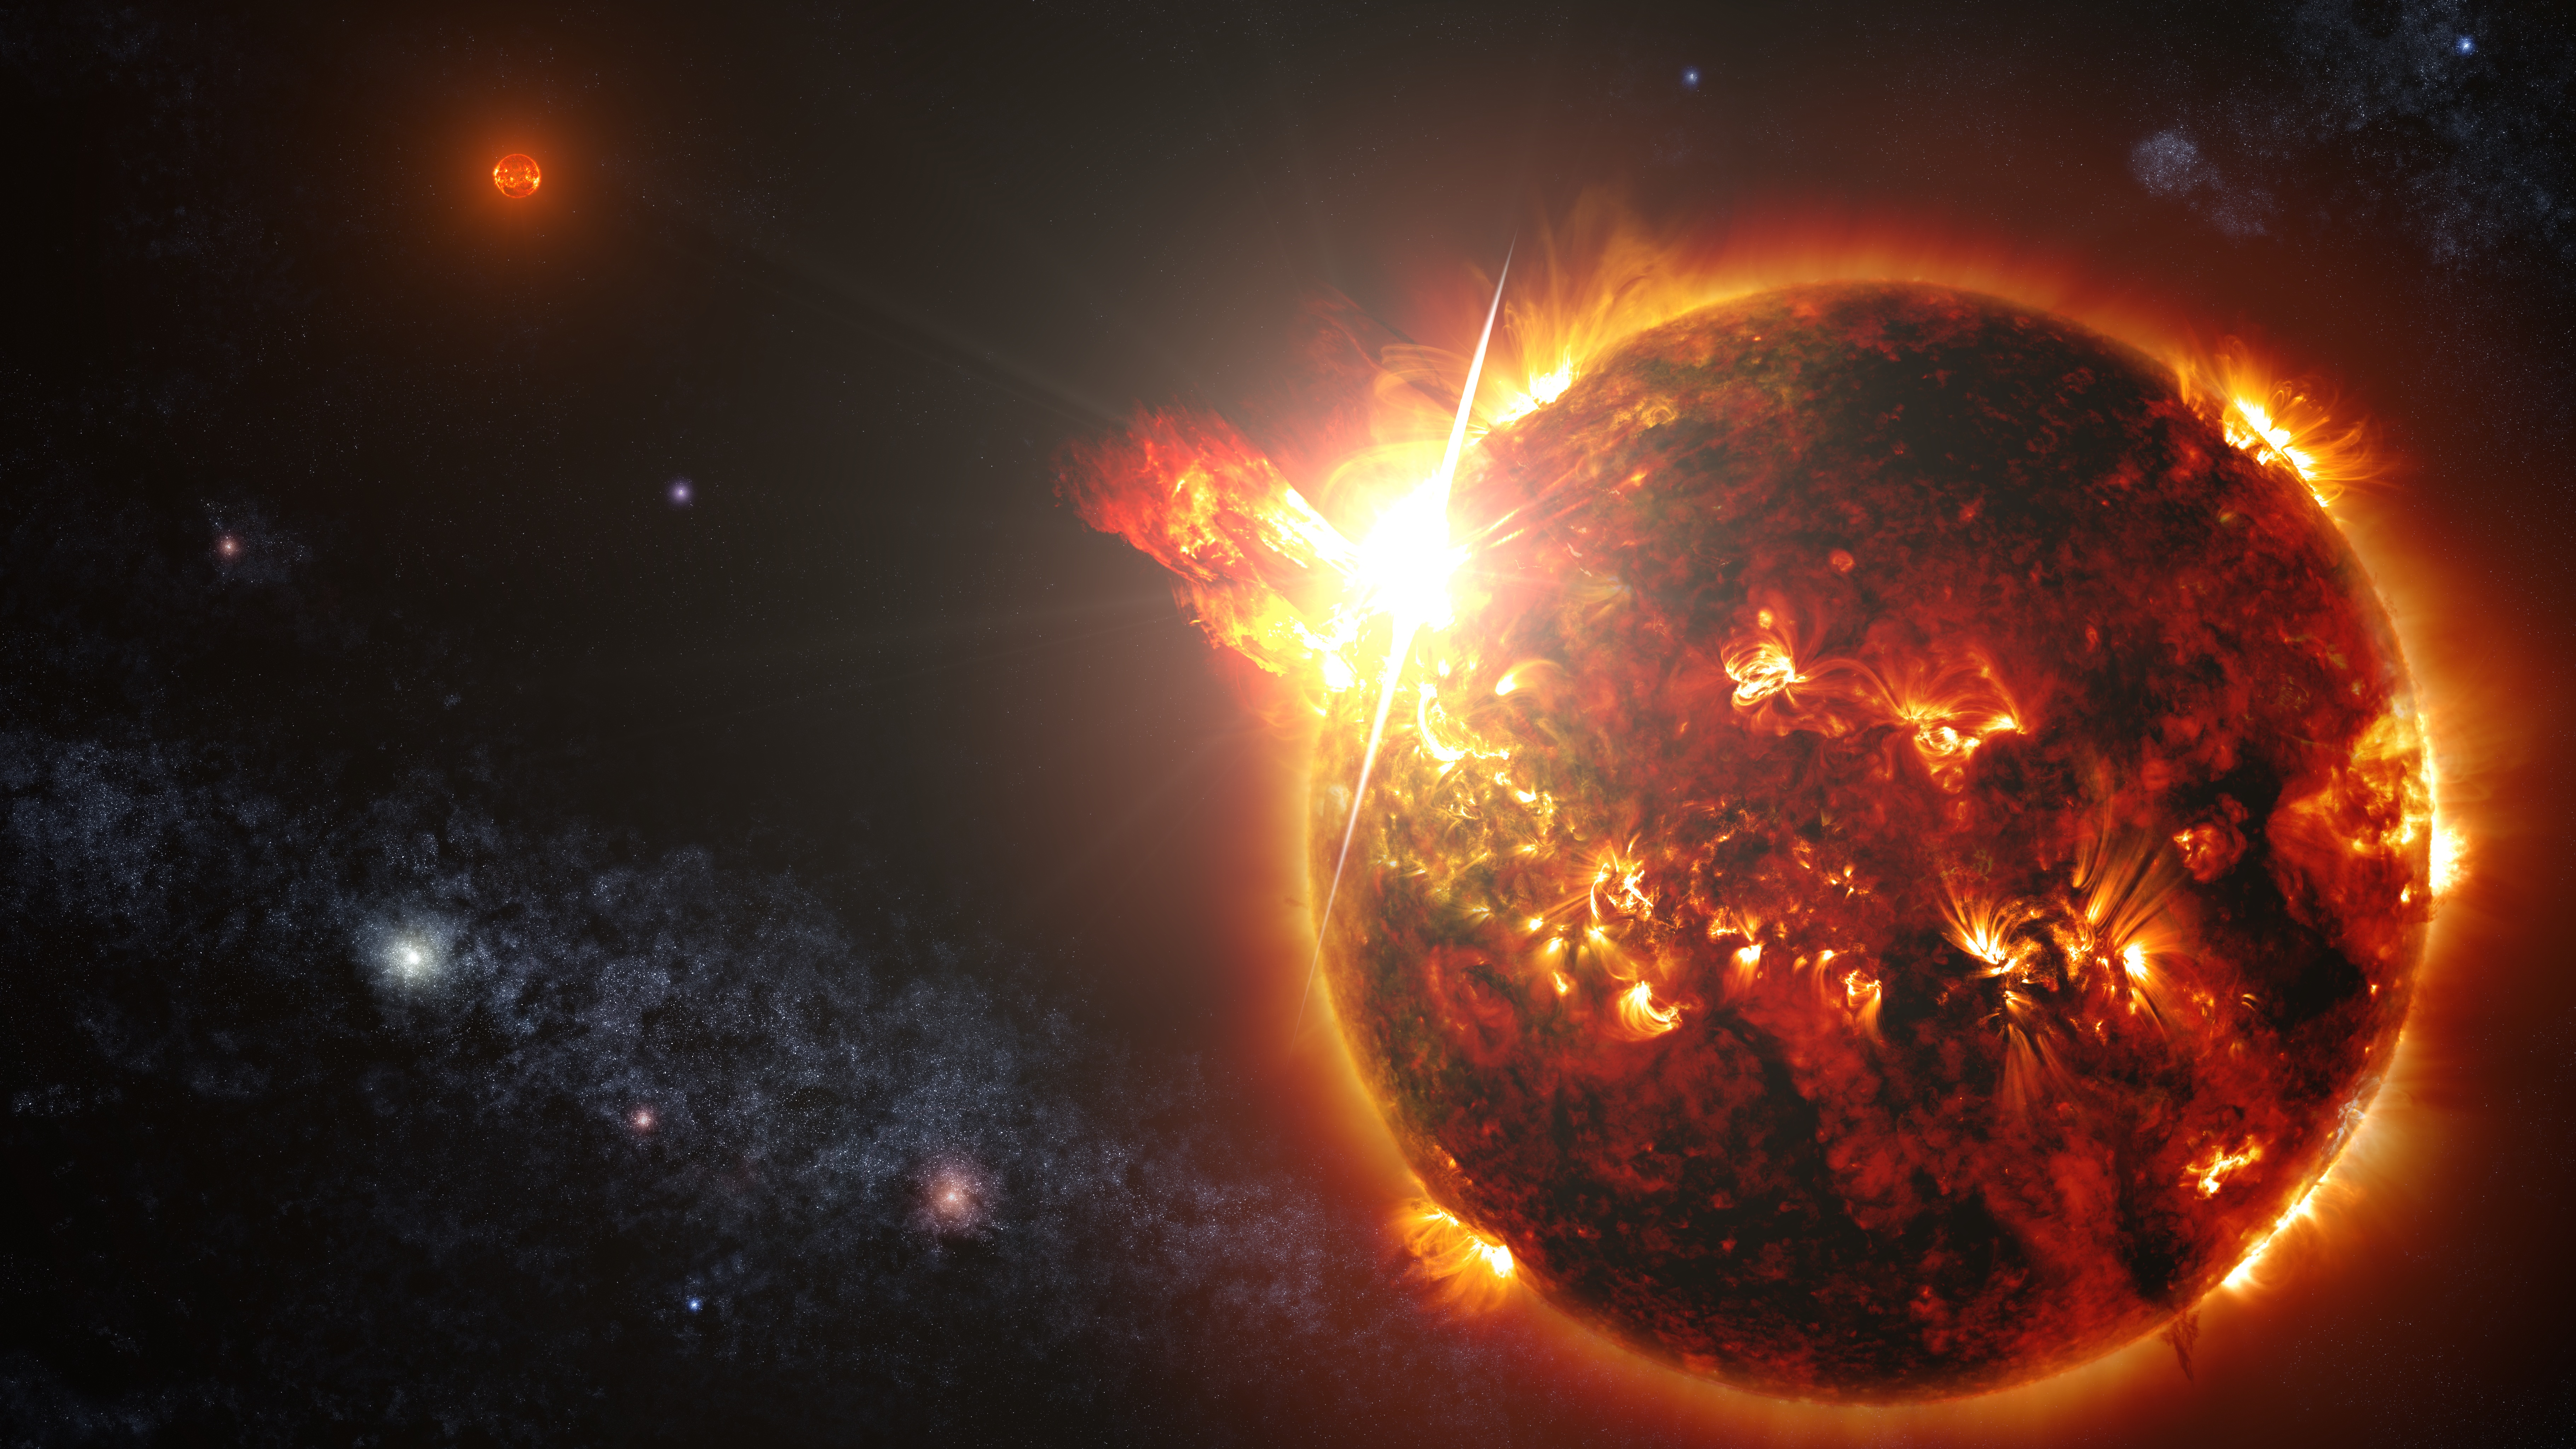 megaflare red dwarf star blows out a huge flare